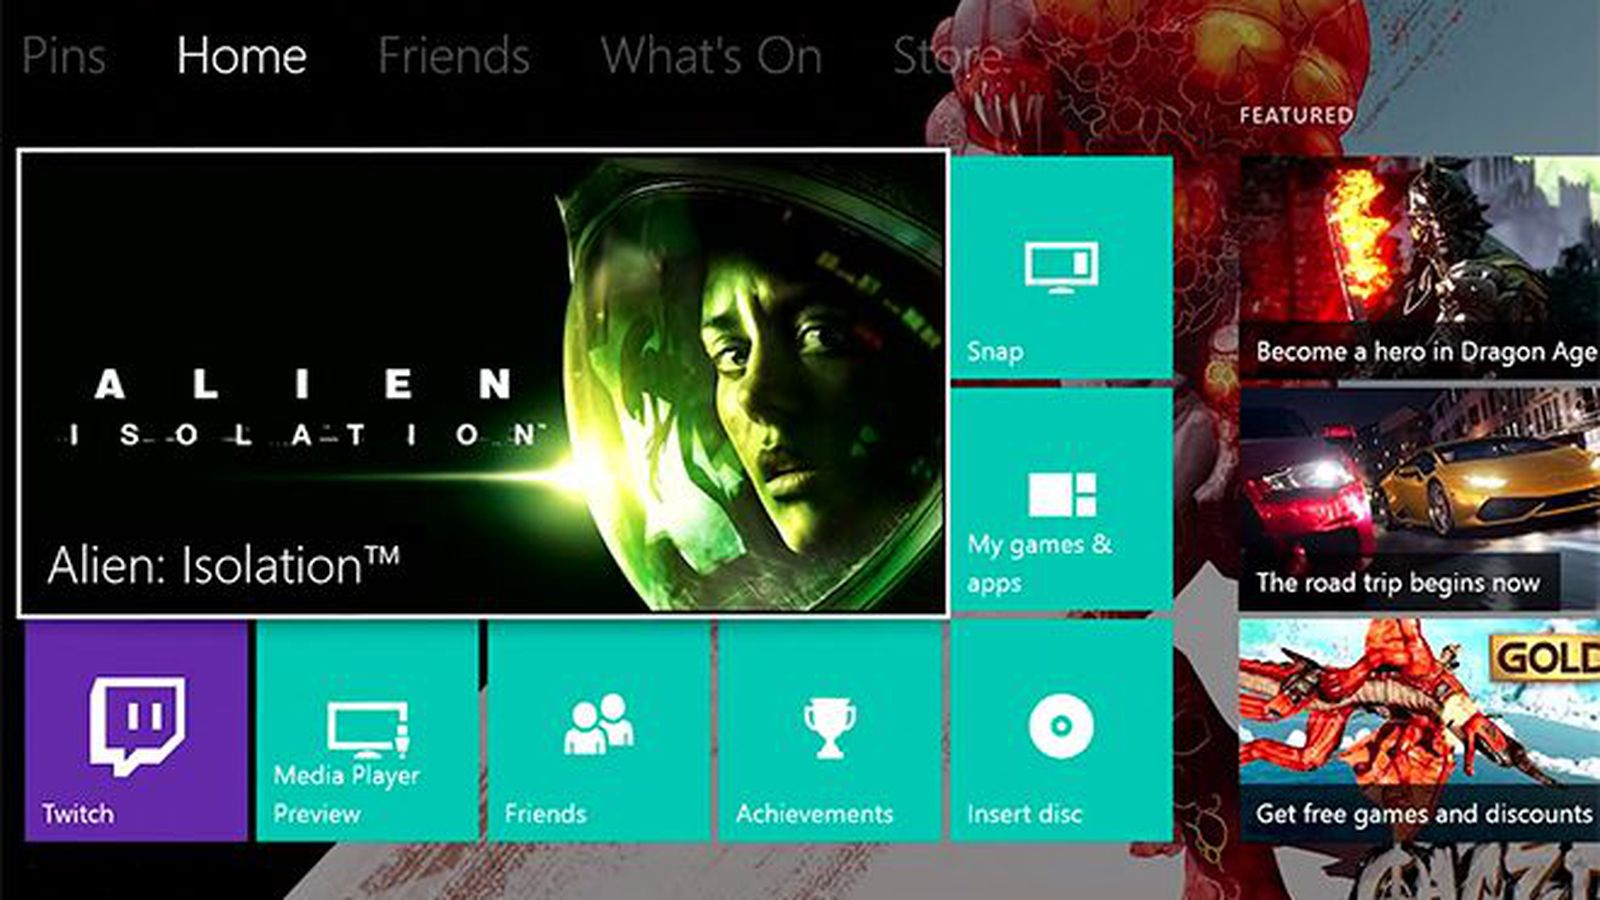 Music Girl Headphones Wallpaper Major Xbox One Update With Custom Backgrounds And Twitter